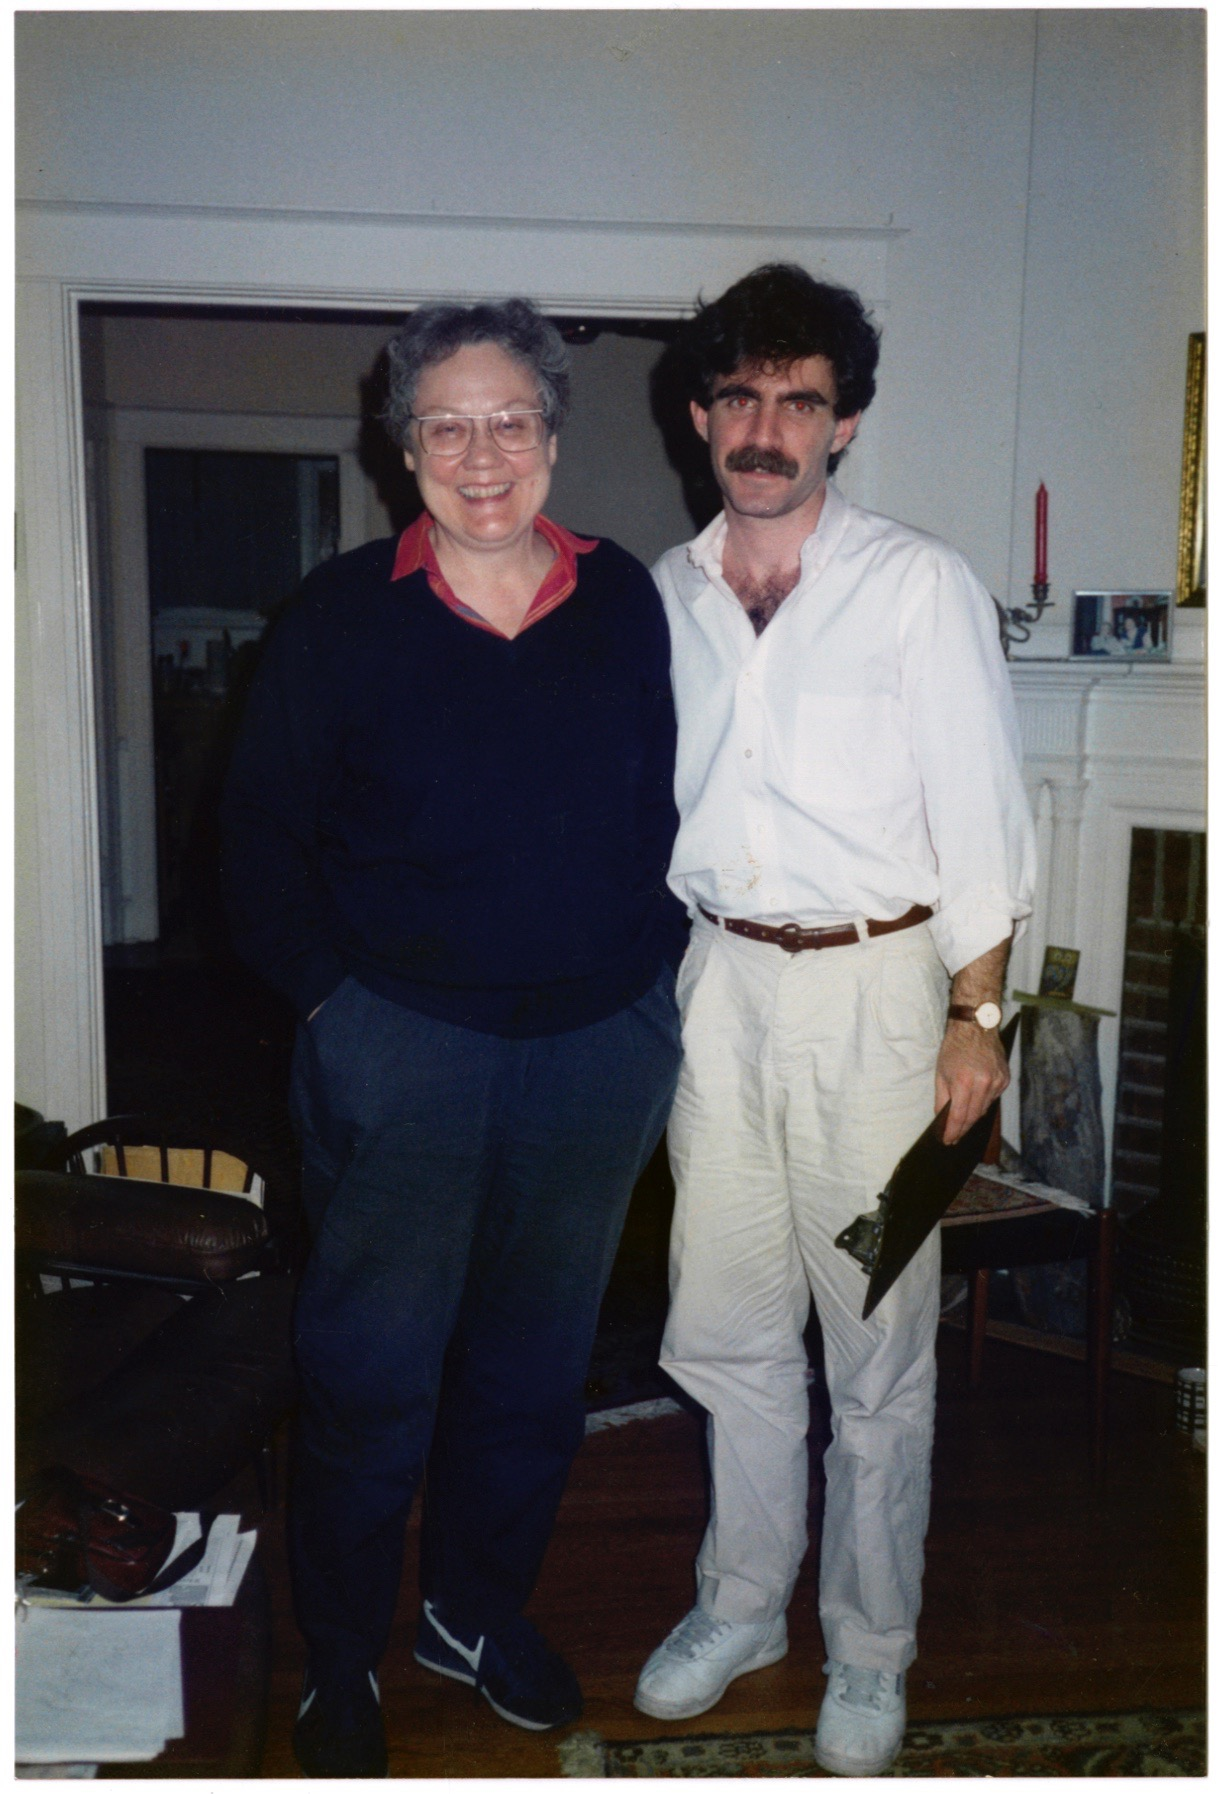 Eric Marcus with Barbara Gittings at home in Philadelphia, May 17, 1989.